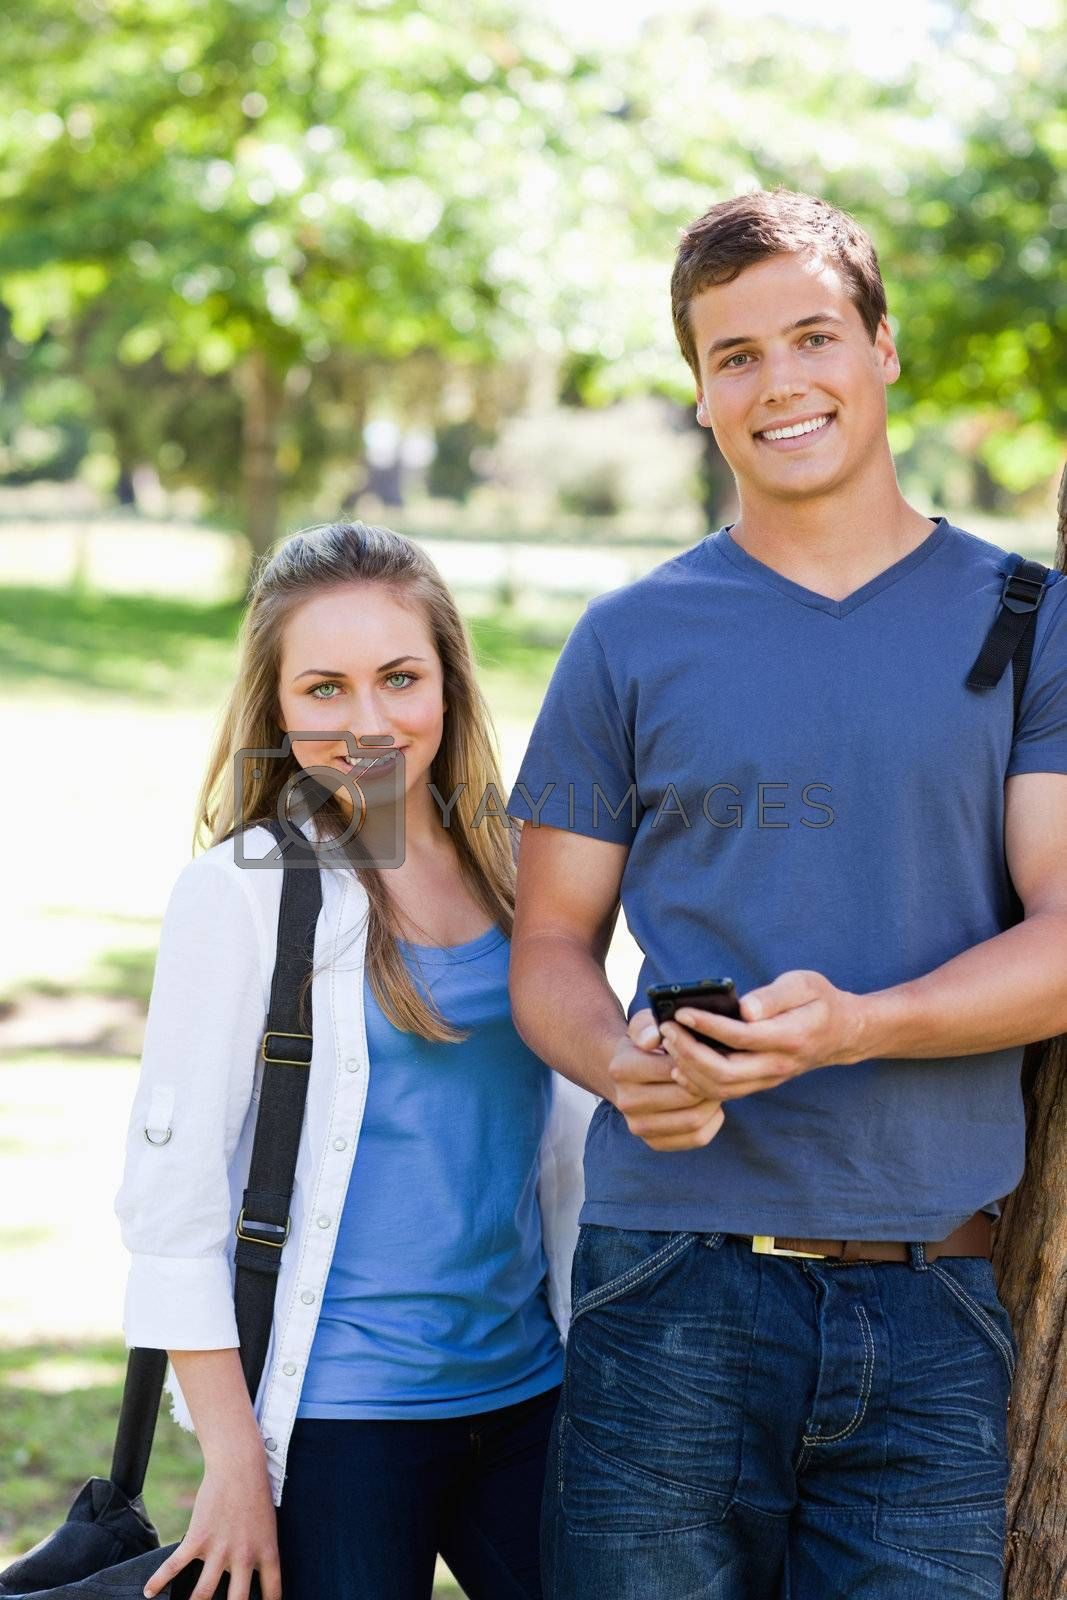 Portrait of two students with a smartphone in a park